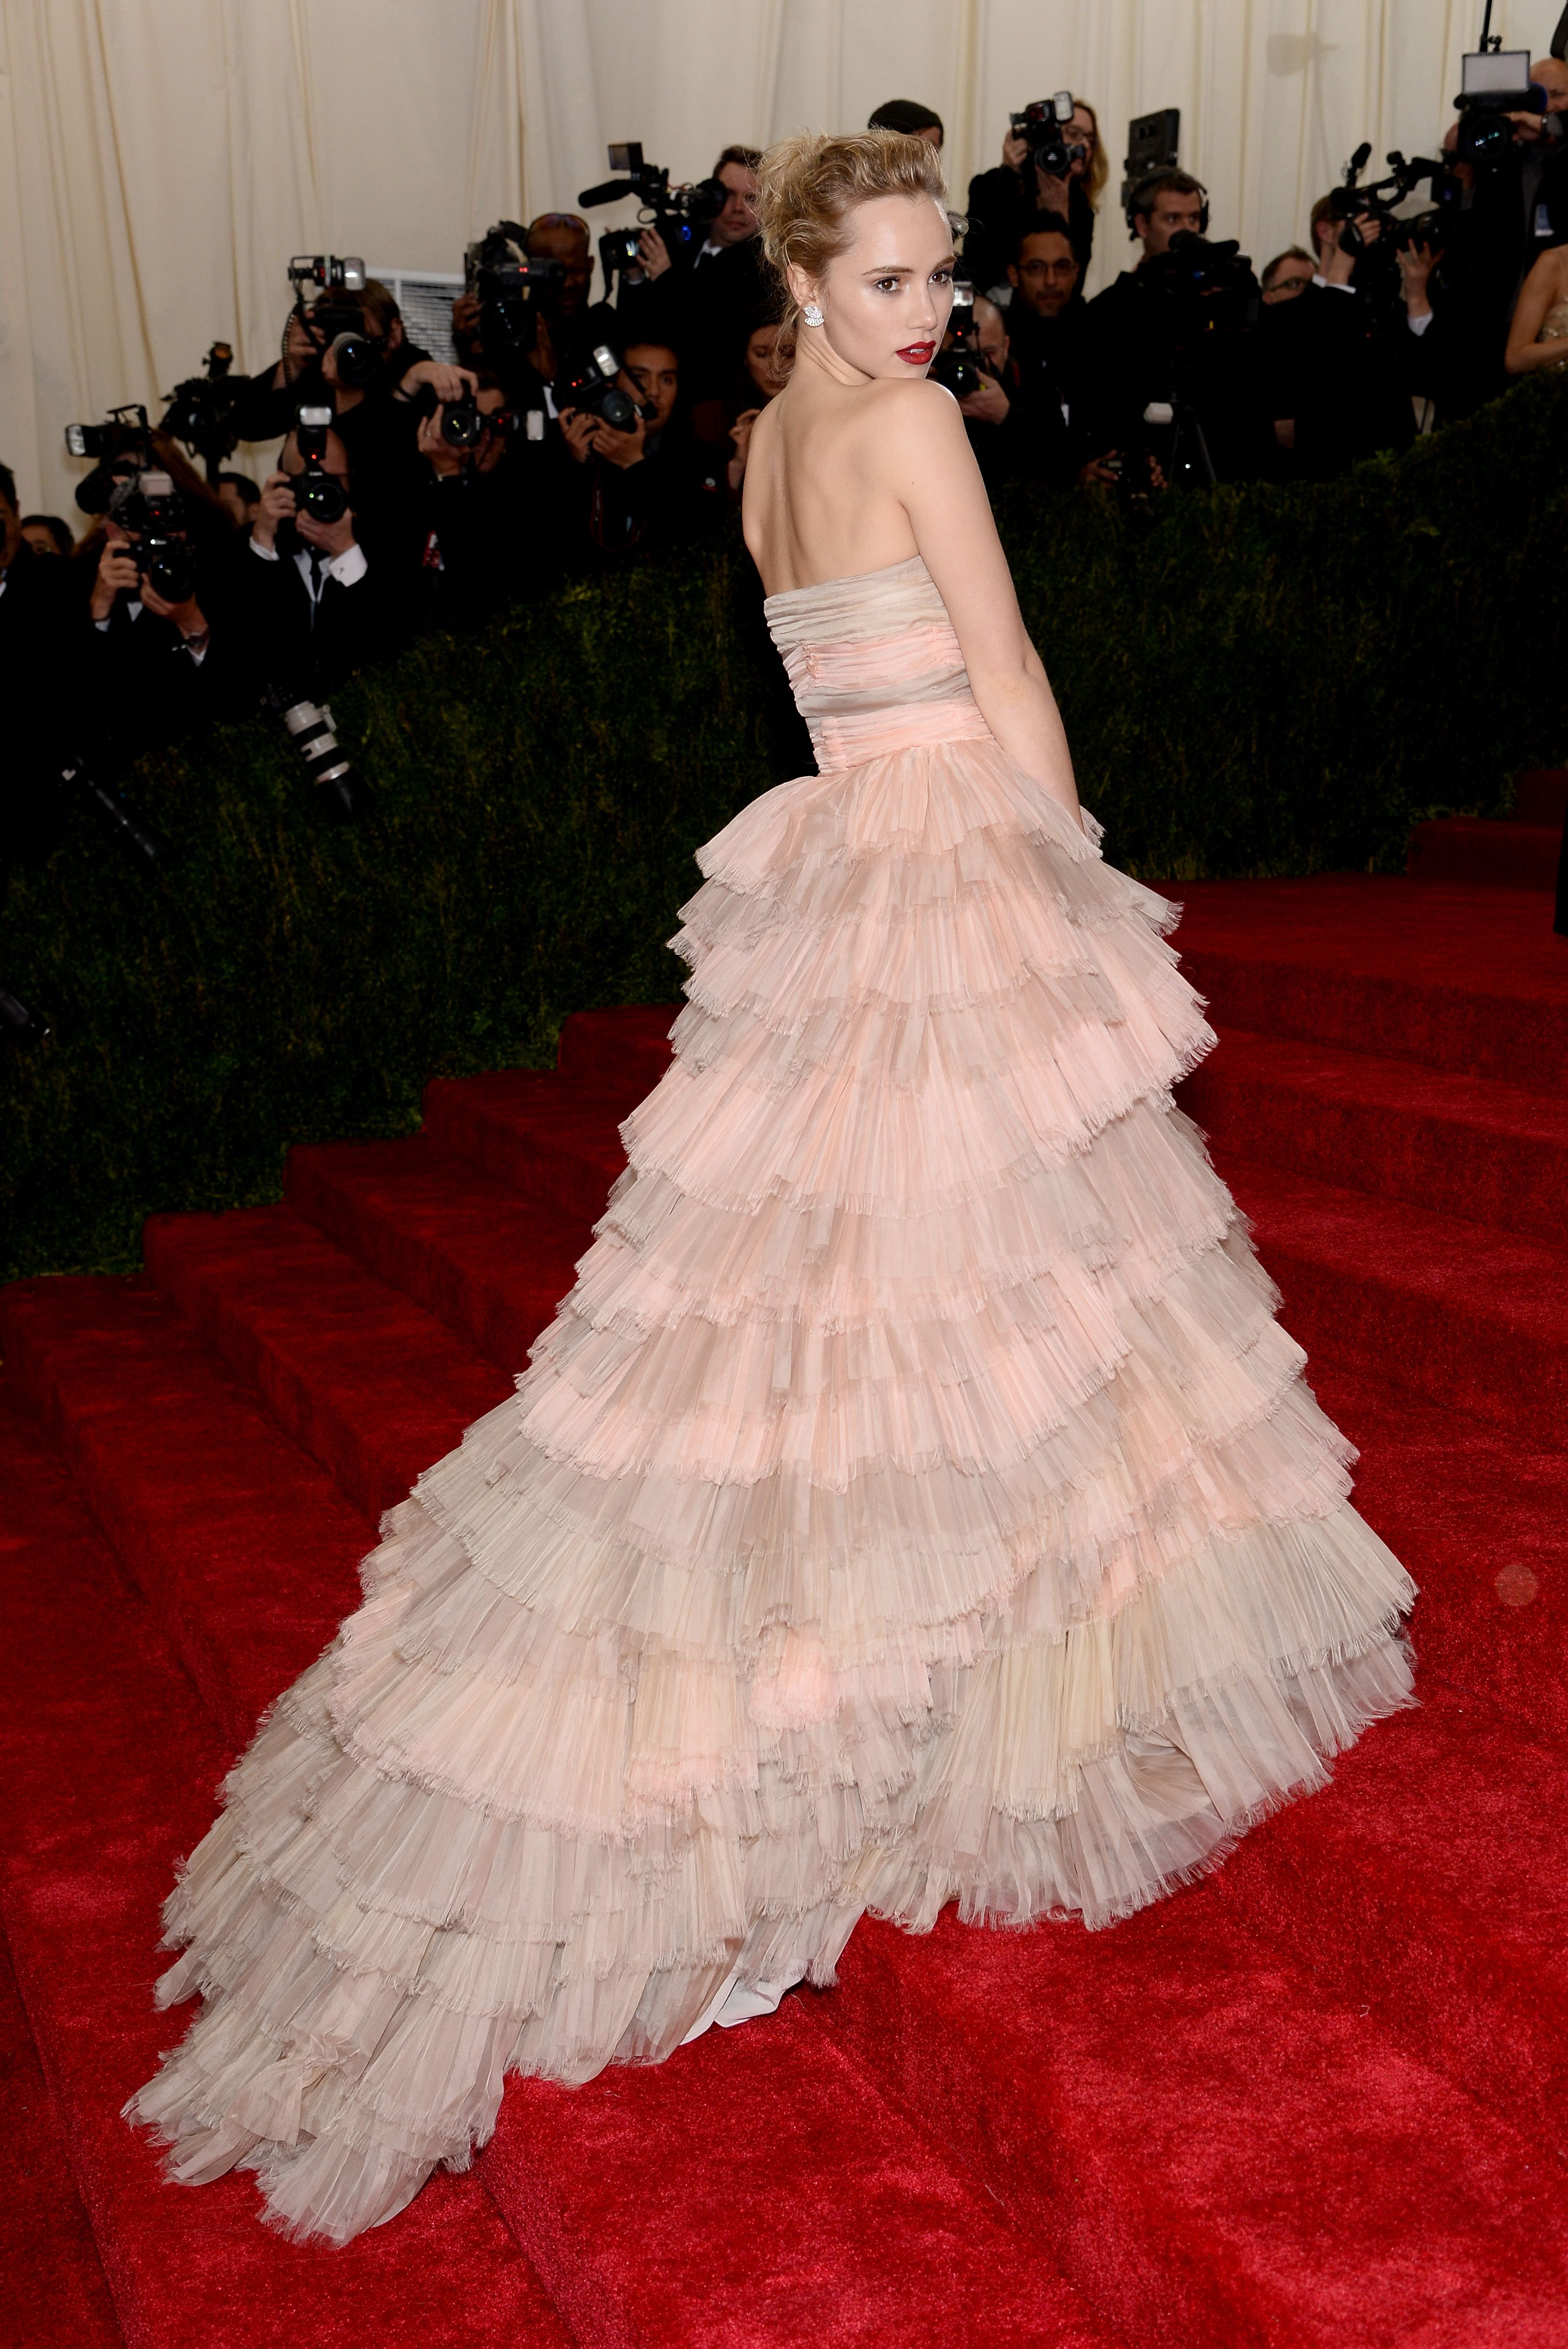 British Model Suki Waterhouse Wearing A Burberry Silk Organza Gown And Burberry Beauty On The Red Carpet At T Met Gala Dresses Met Gala Red Carpet Gala Dresses